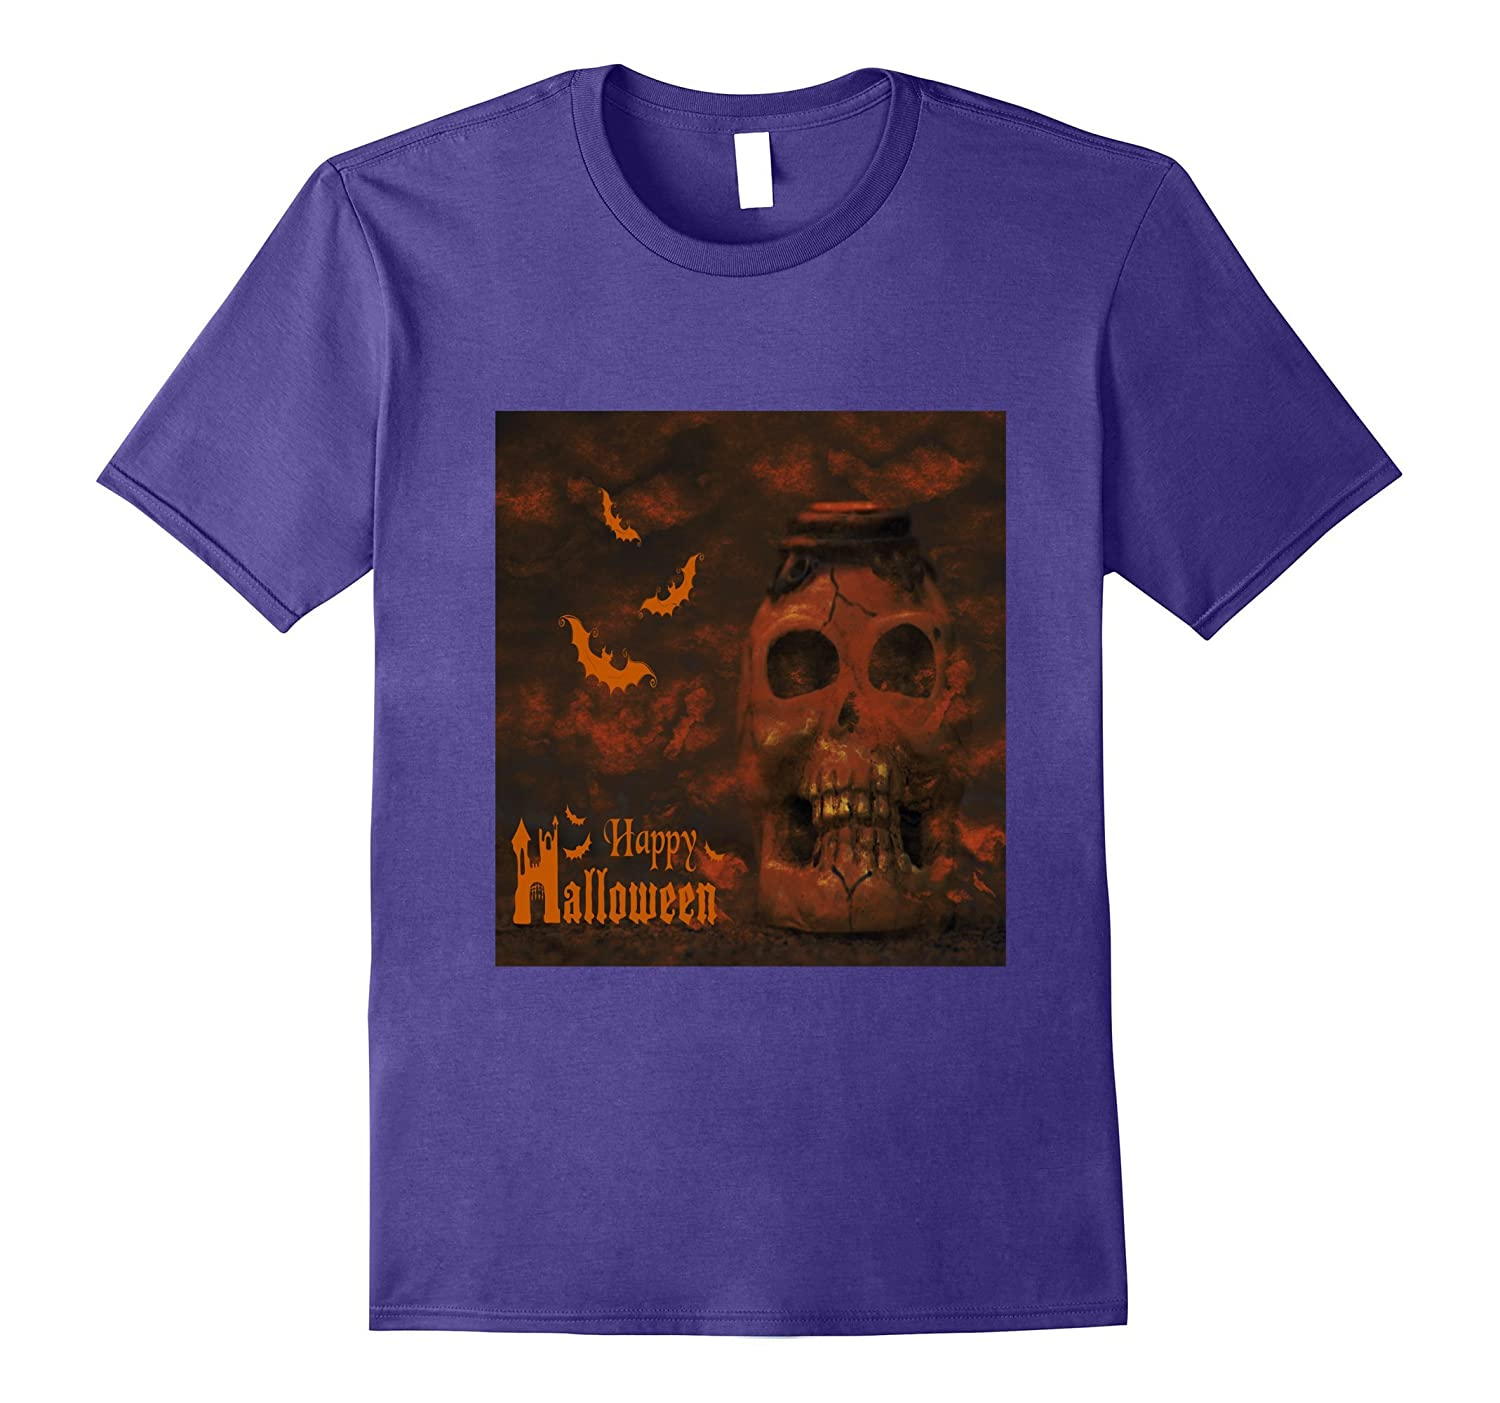 Skeleton Skull Head And Bats Horror Halloween T-Shirt scary-TJ